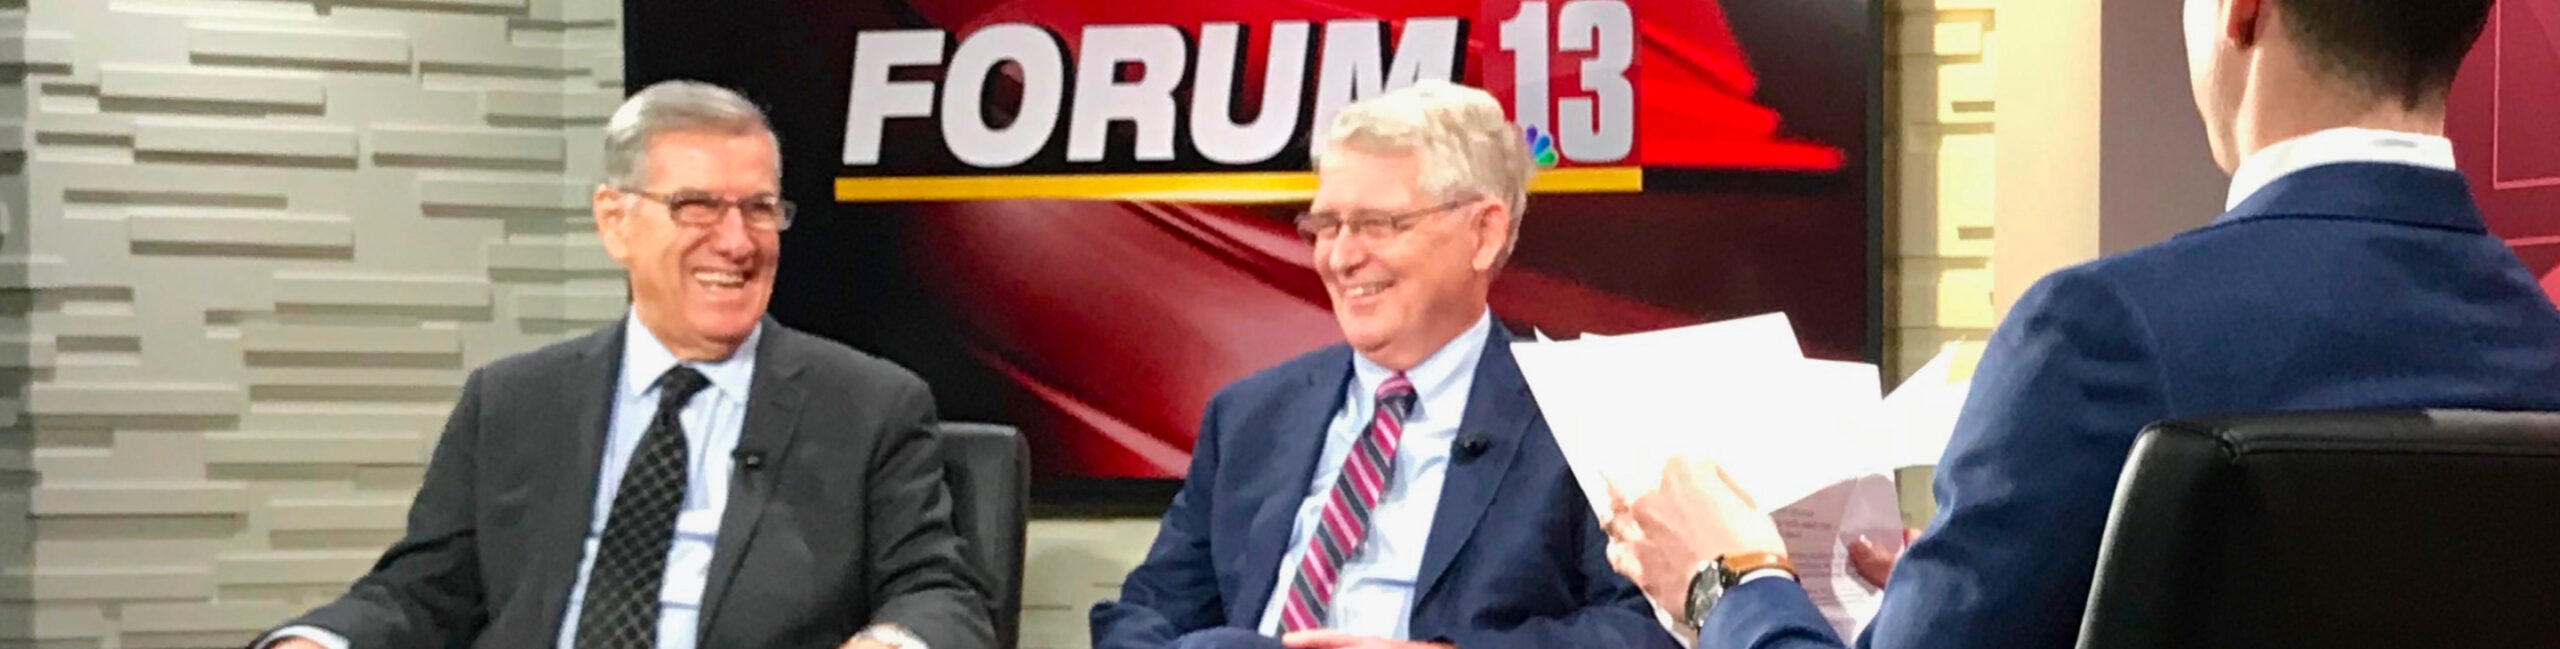 Left to right: Dr. Rashid and President Dewey laughing on the news